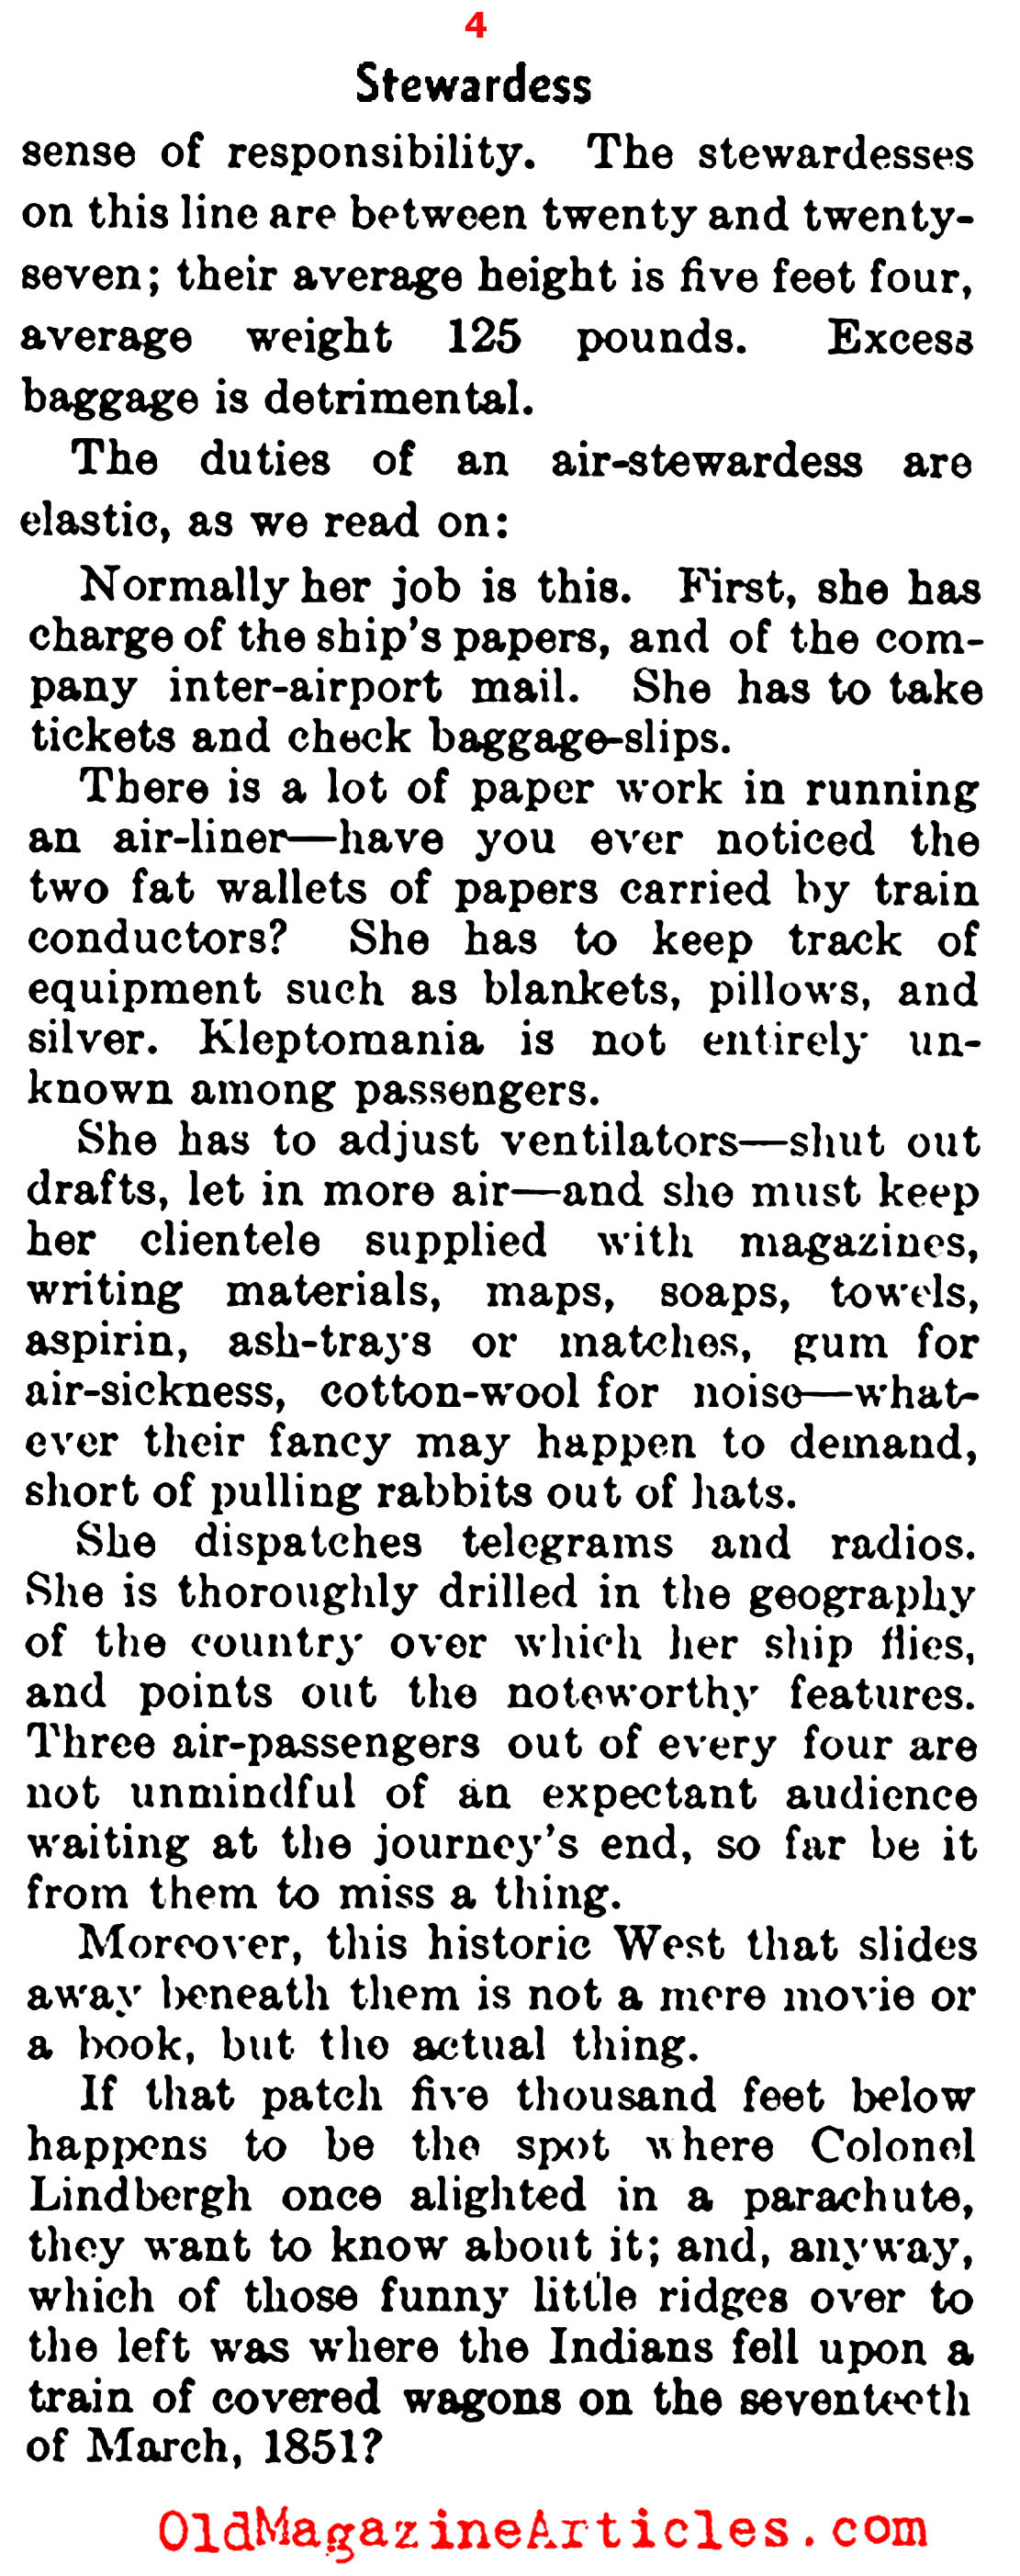 The Earliest Airline Stewardesses (The Literary Digest, 1933)